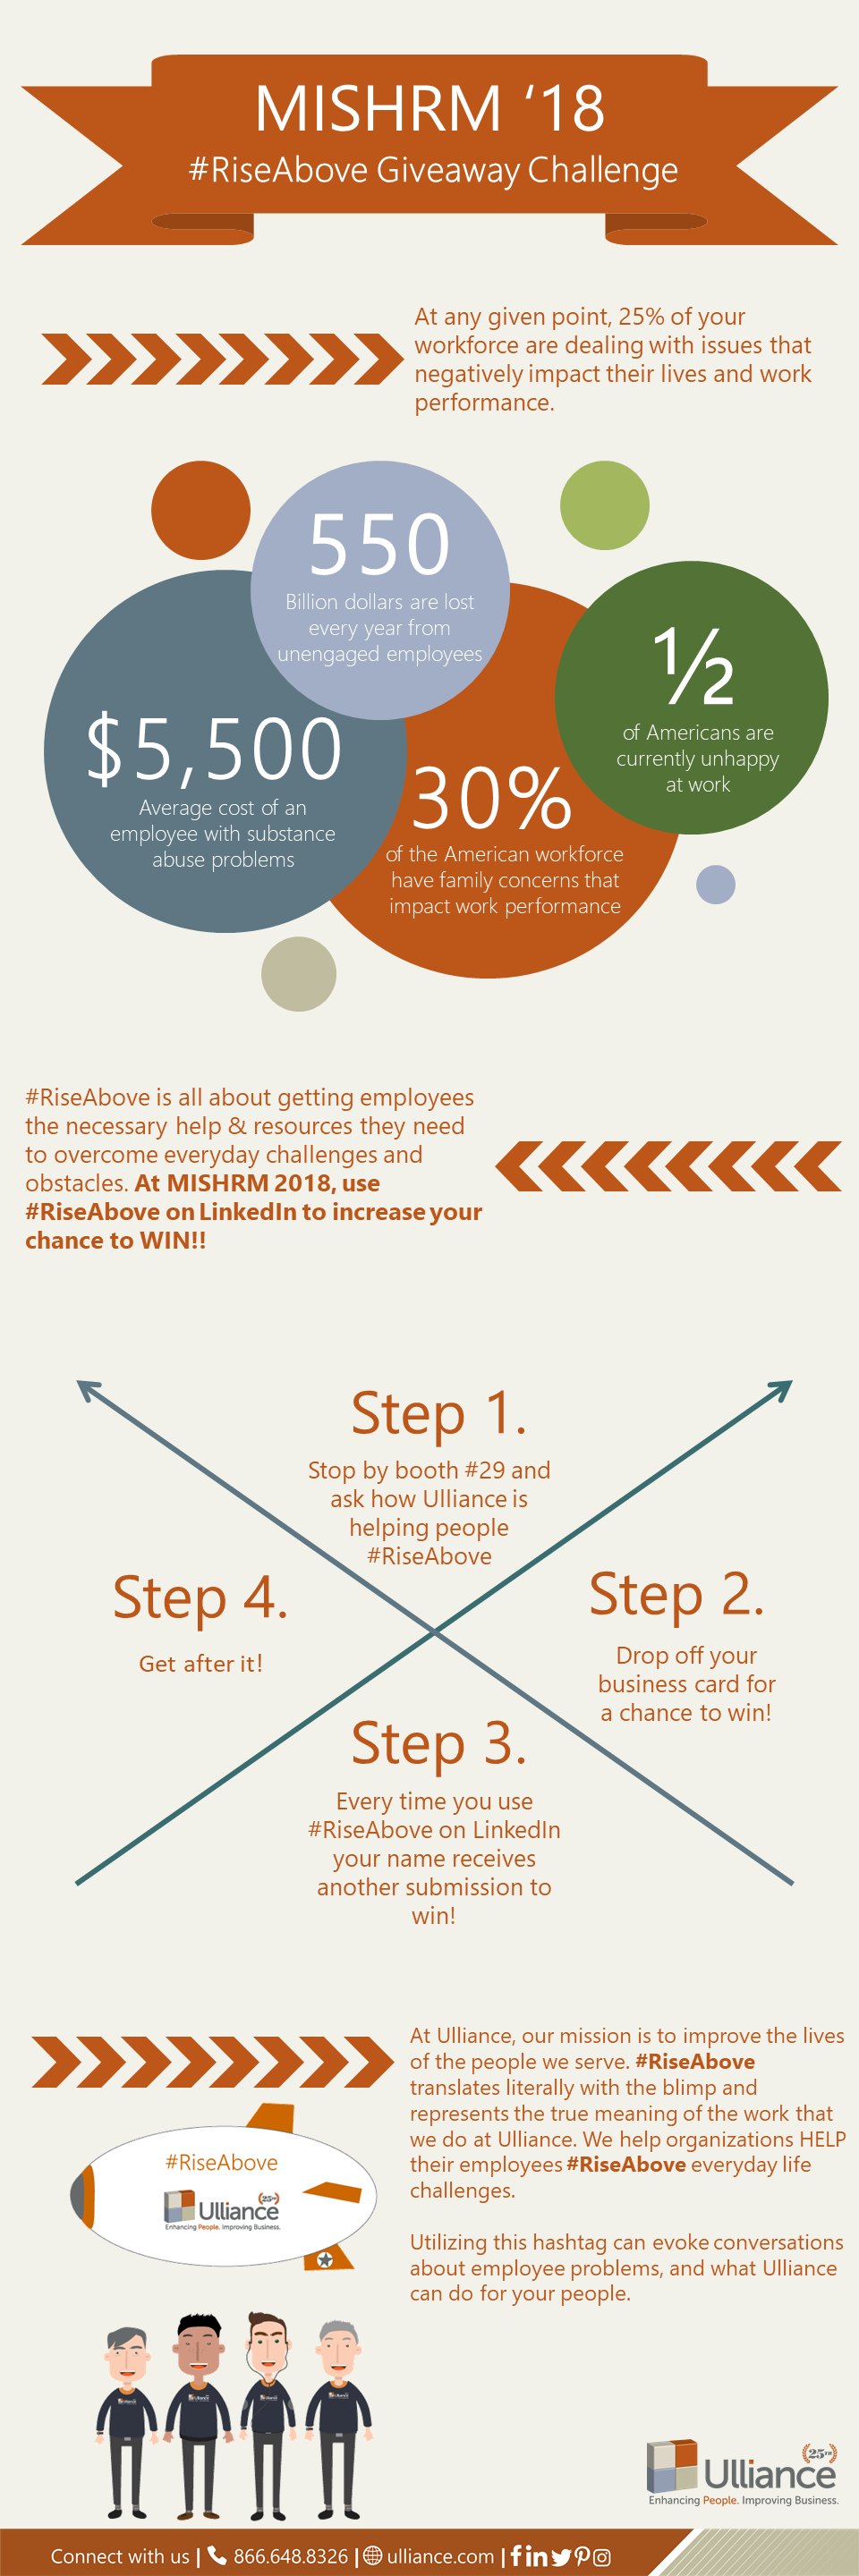 MISHRM Giveaway Challenge Infographic